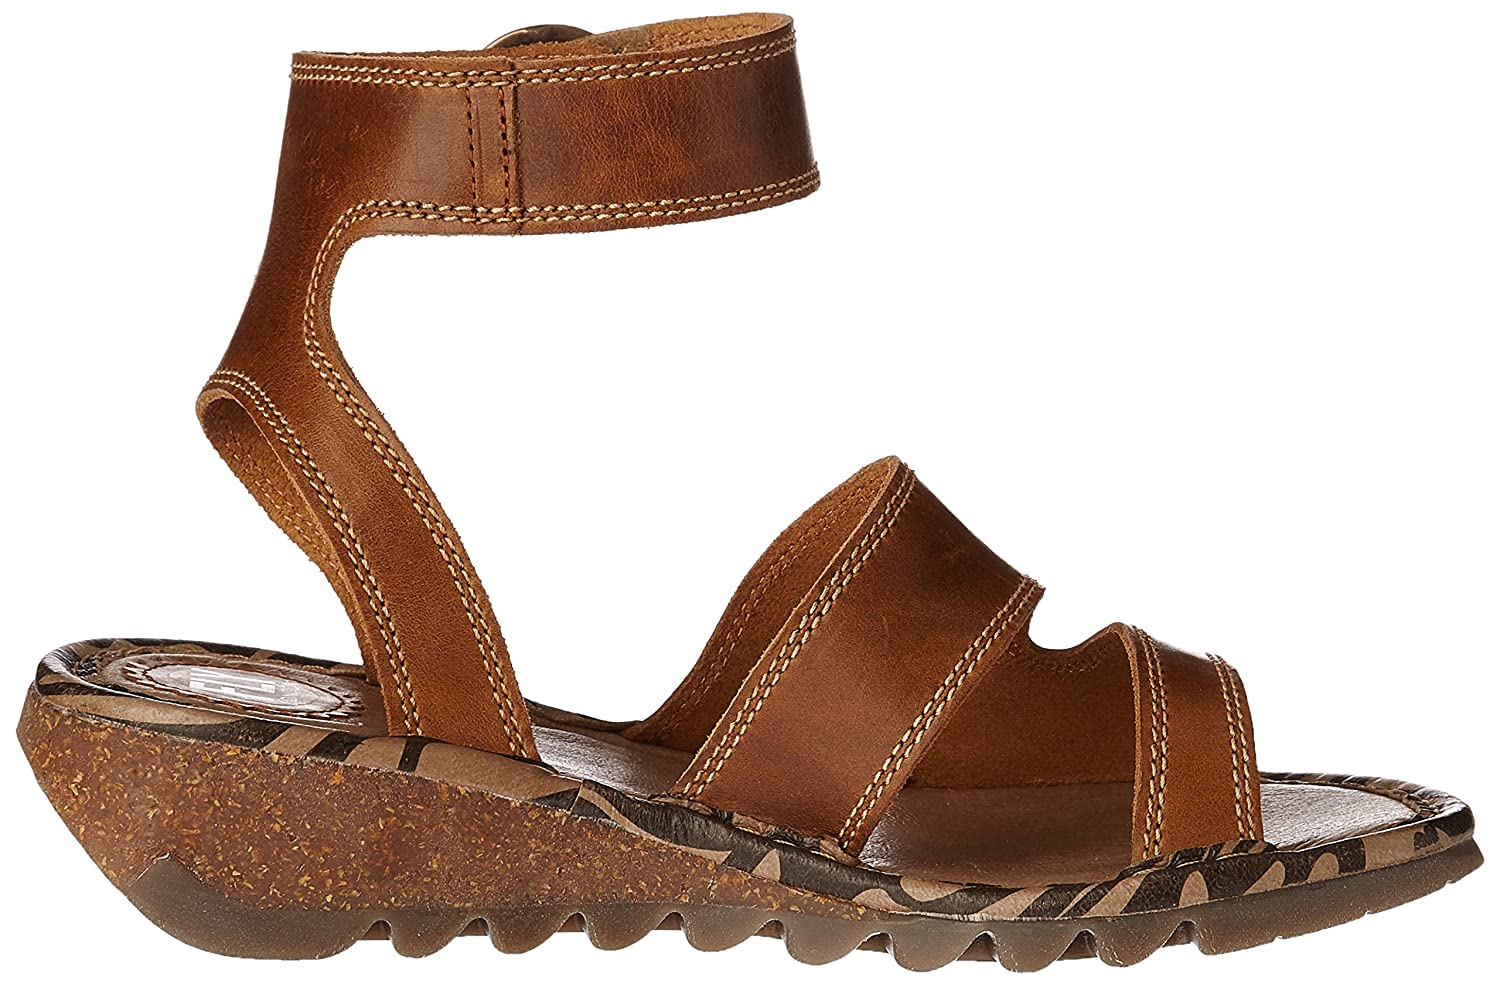 Fly London Womens Camel Tily722fly Wedge Bridle Sandals B01LX794E2 Wedge Tily722fly 20ccaf